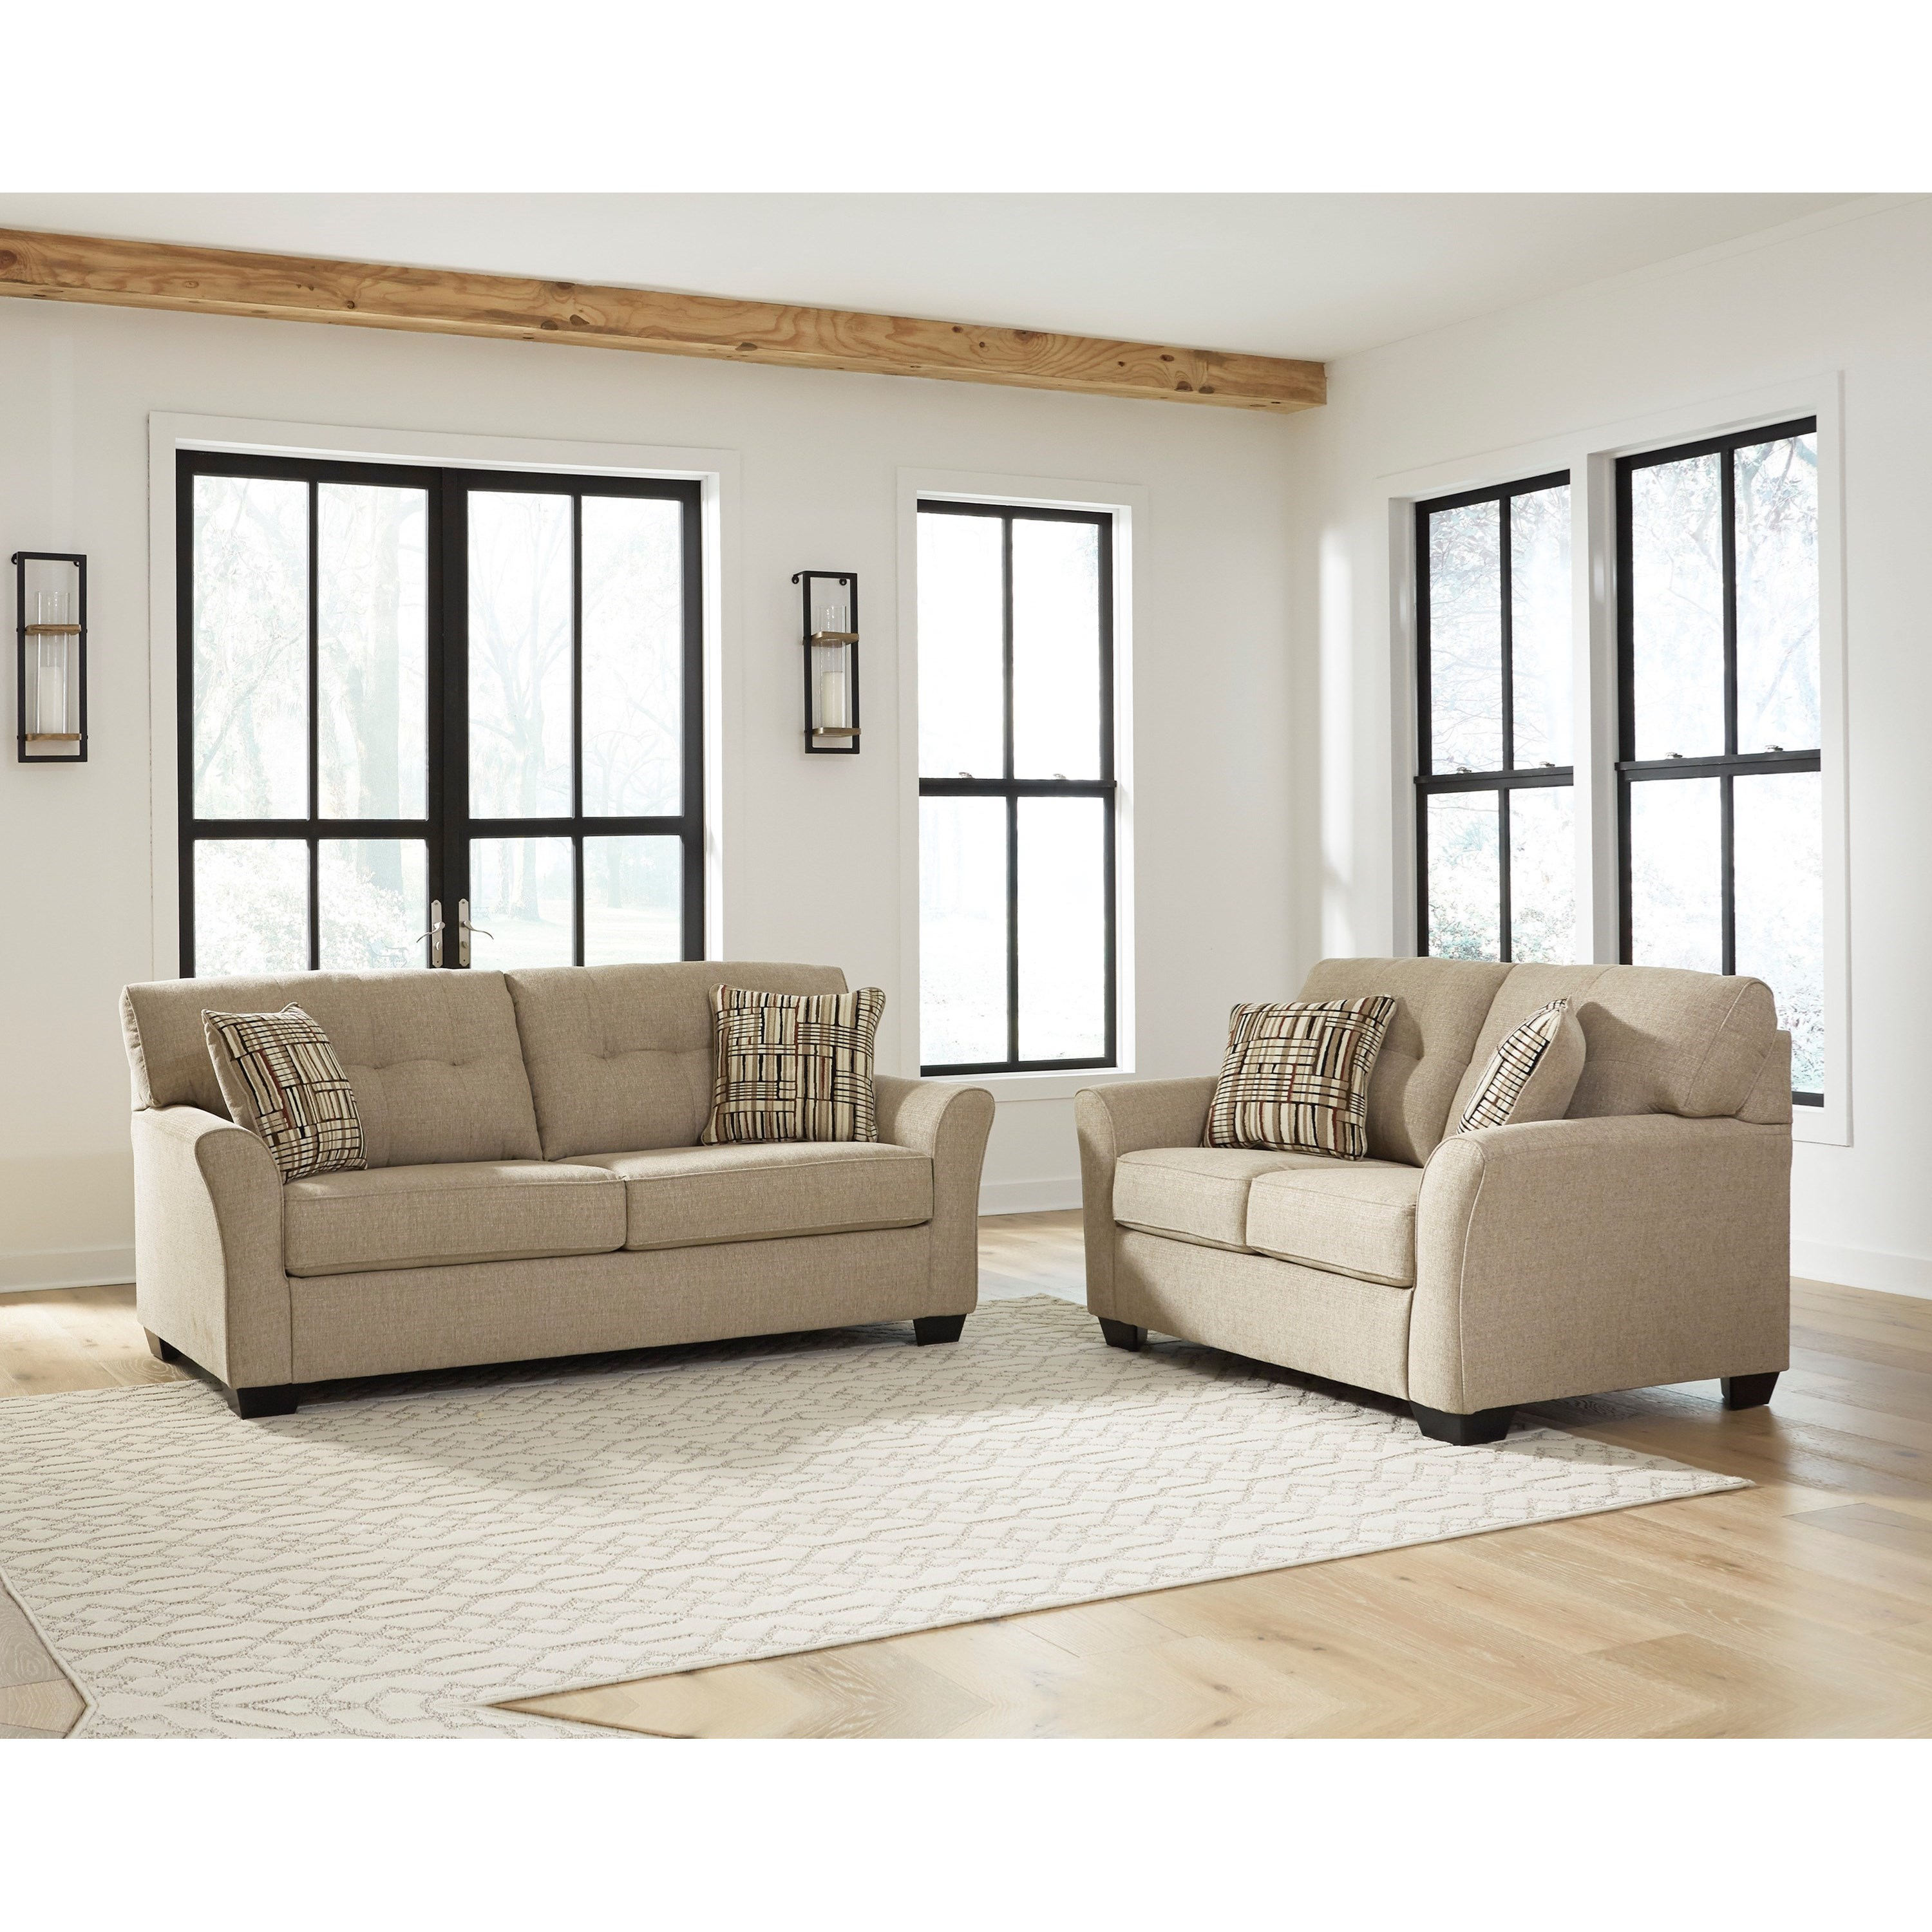 Ardmead Living Room Group by Benchcraft at Zak's Warehouse Clearance Center